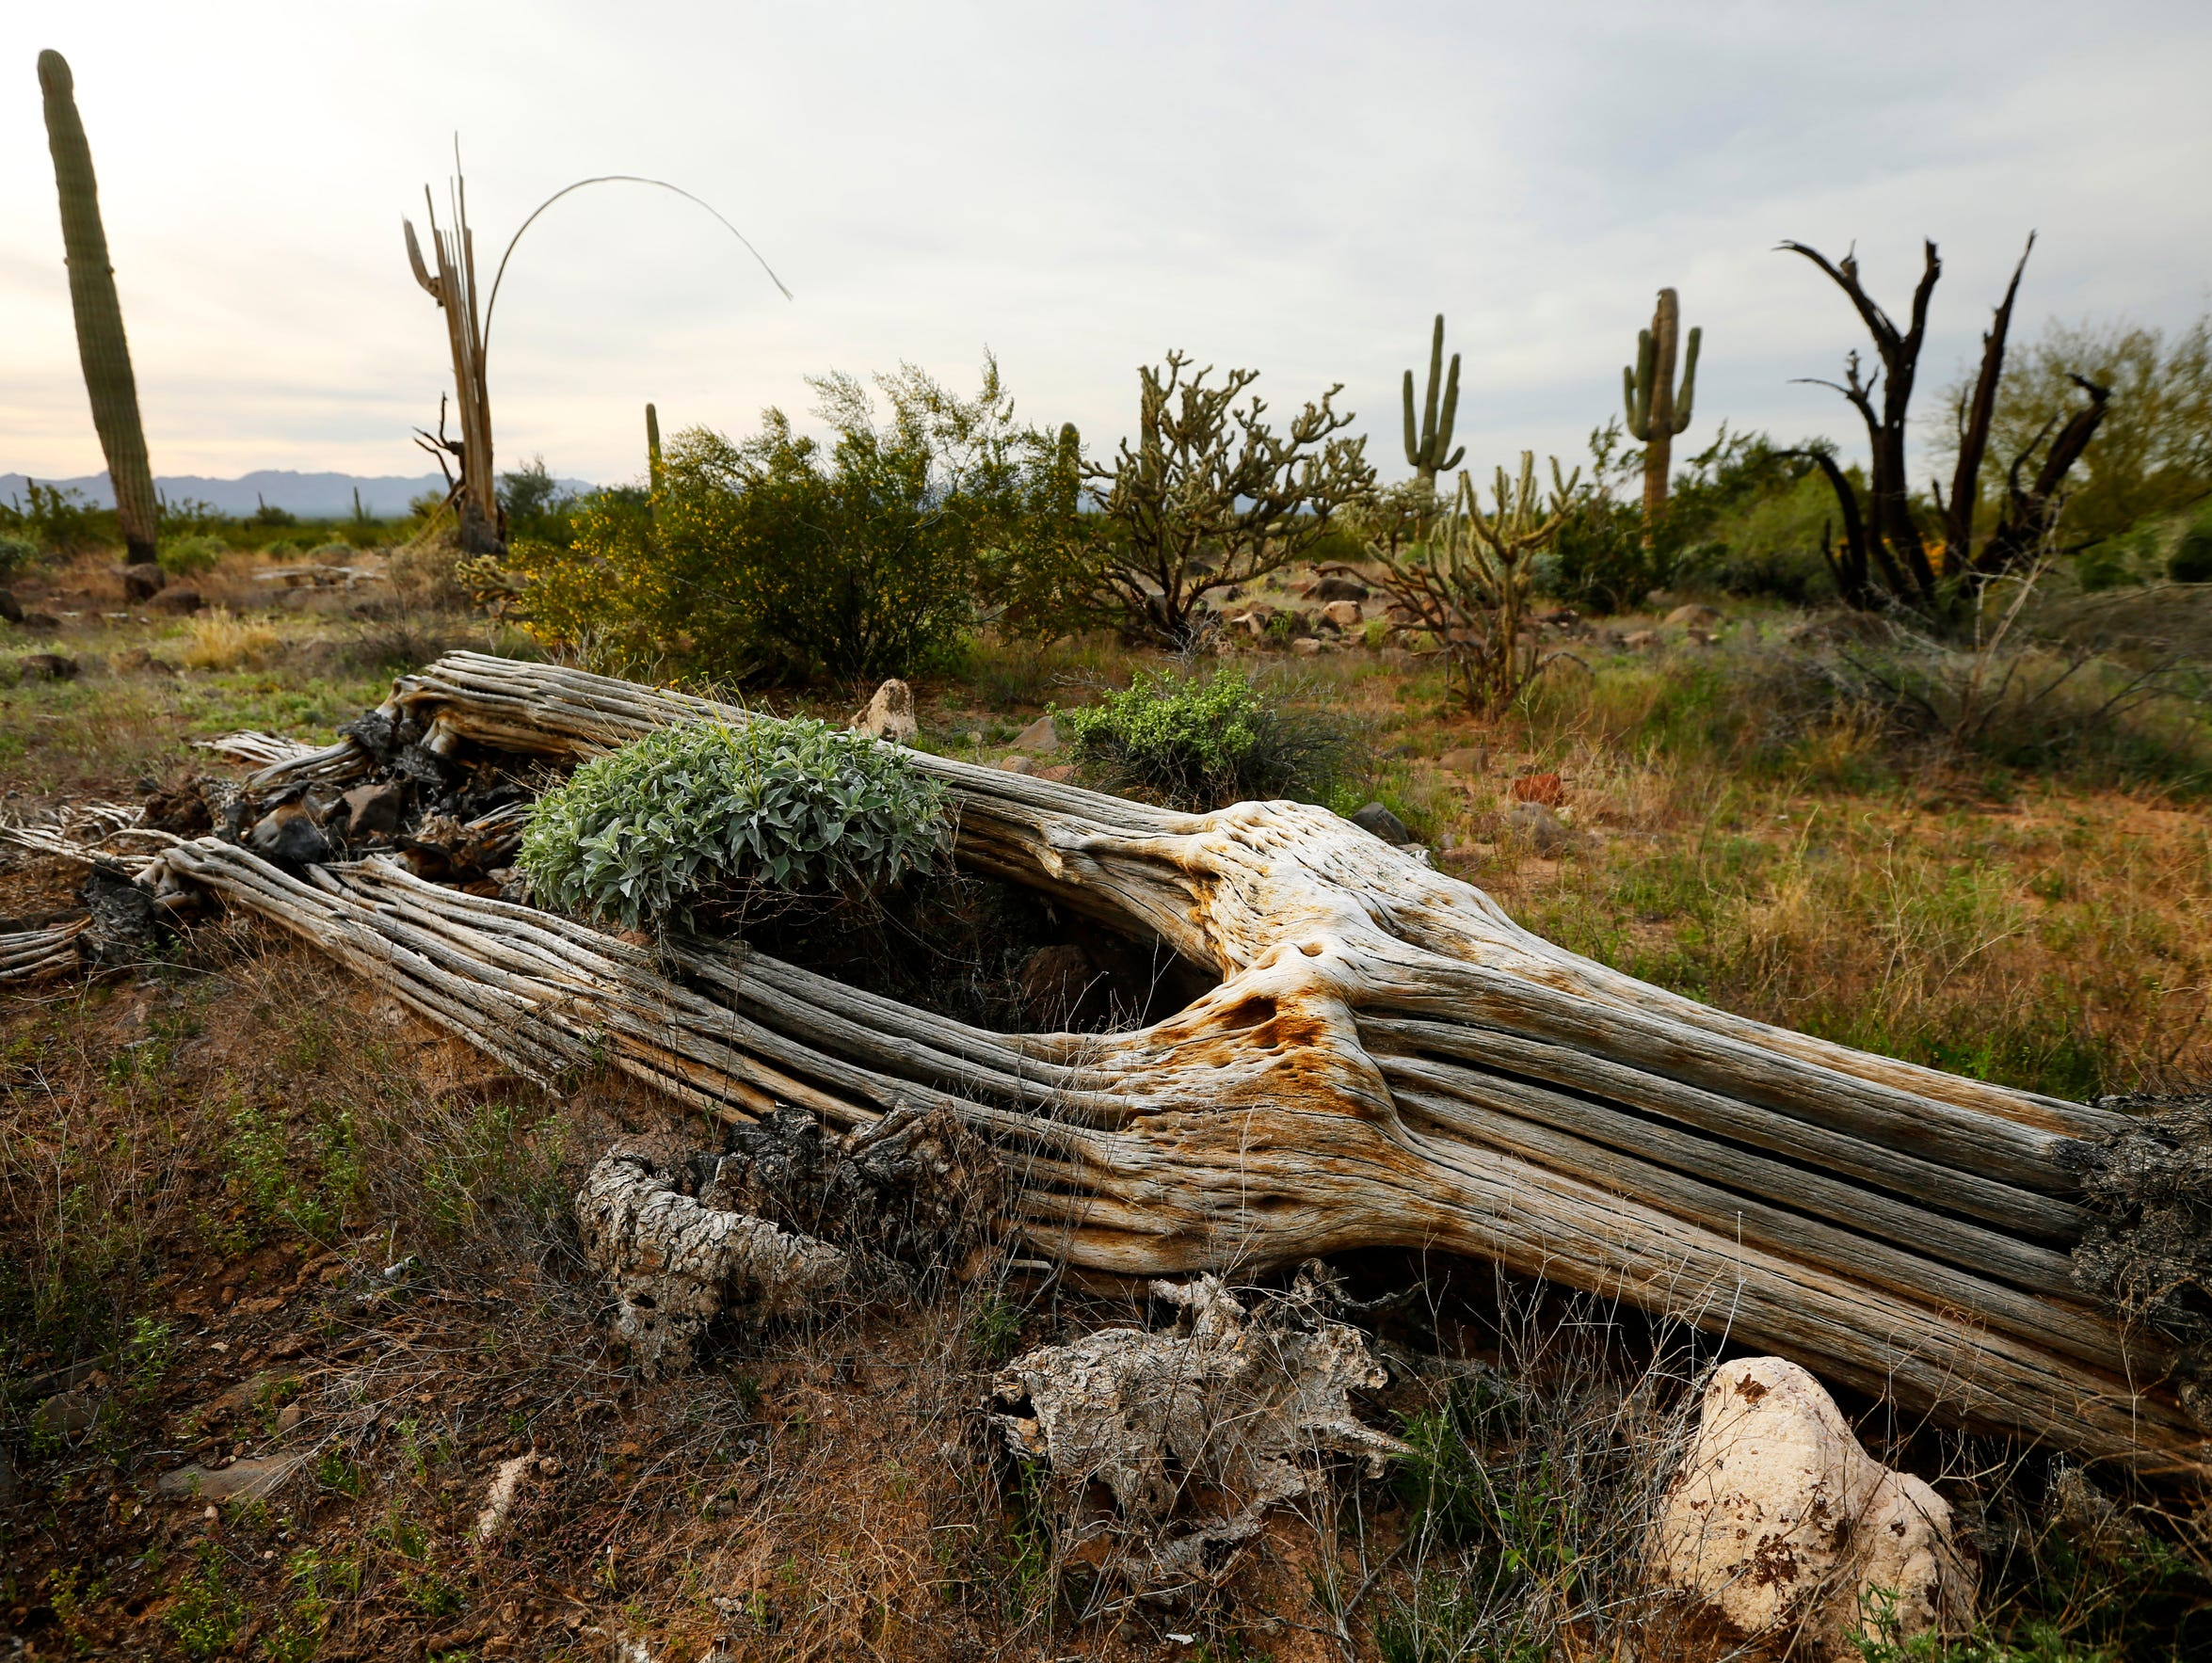 burying edward abbey the last act of defiance the skeleton of saguaro cactus in the cabeza prieta